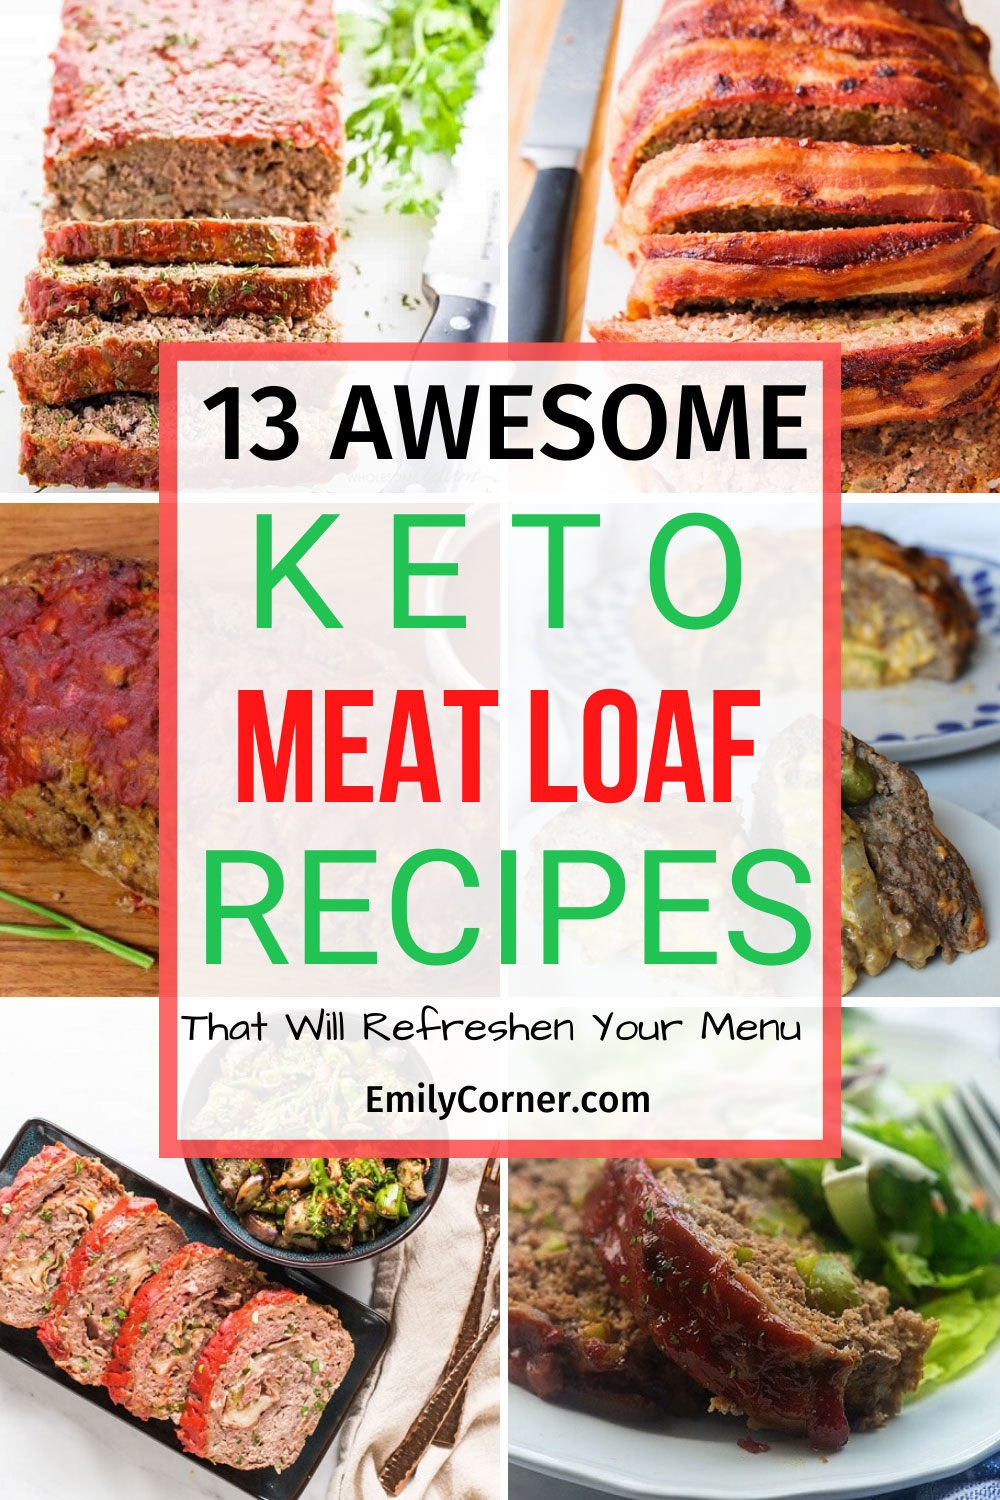 keto meatloaf recipes